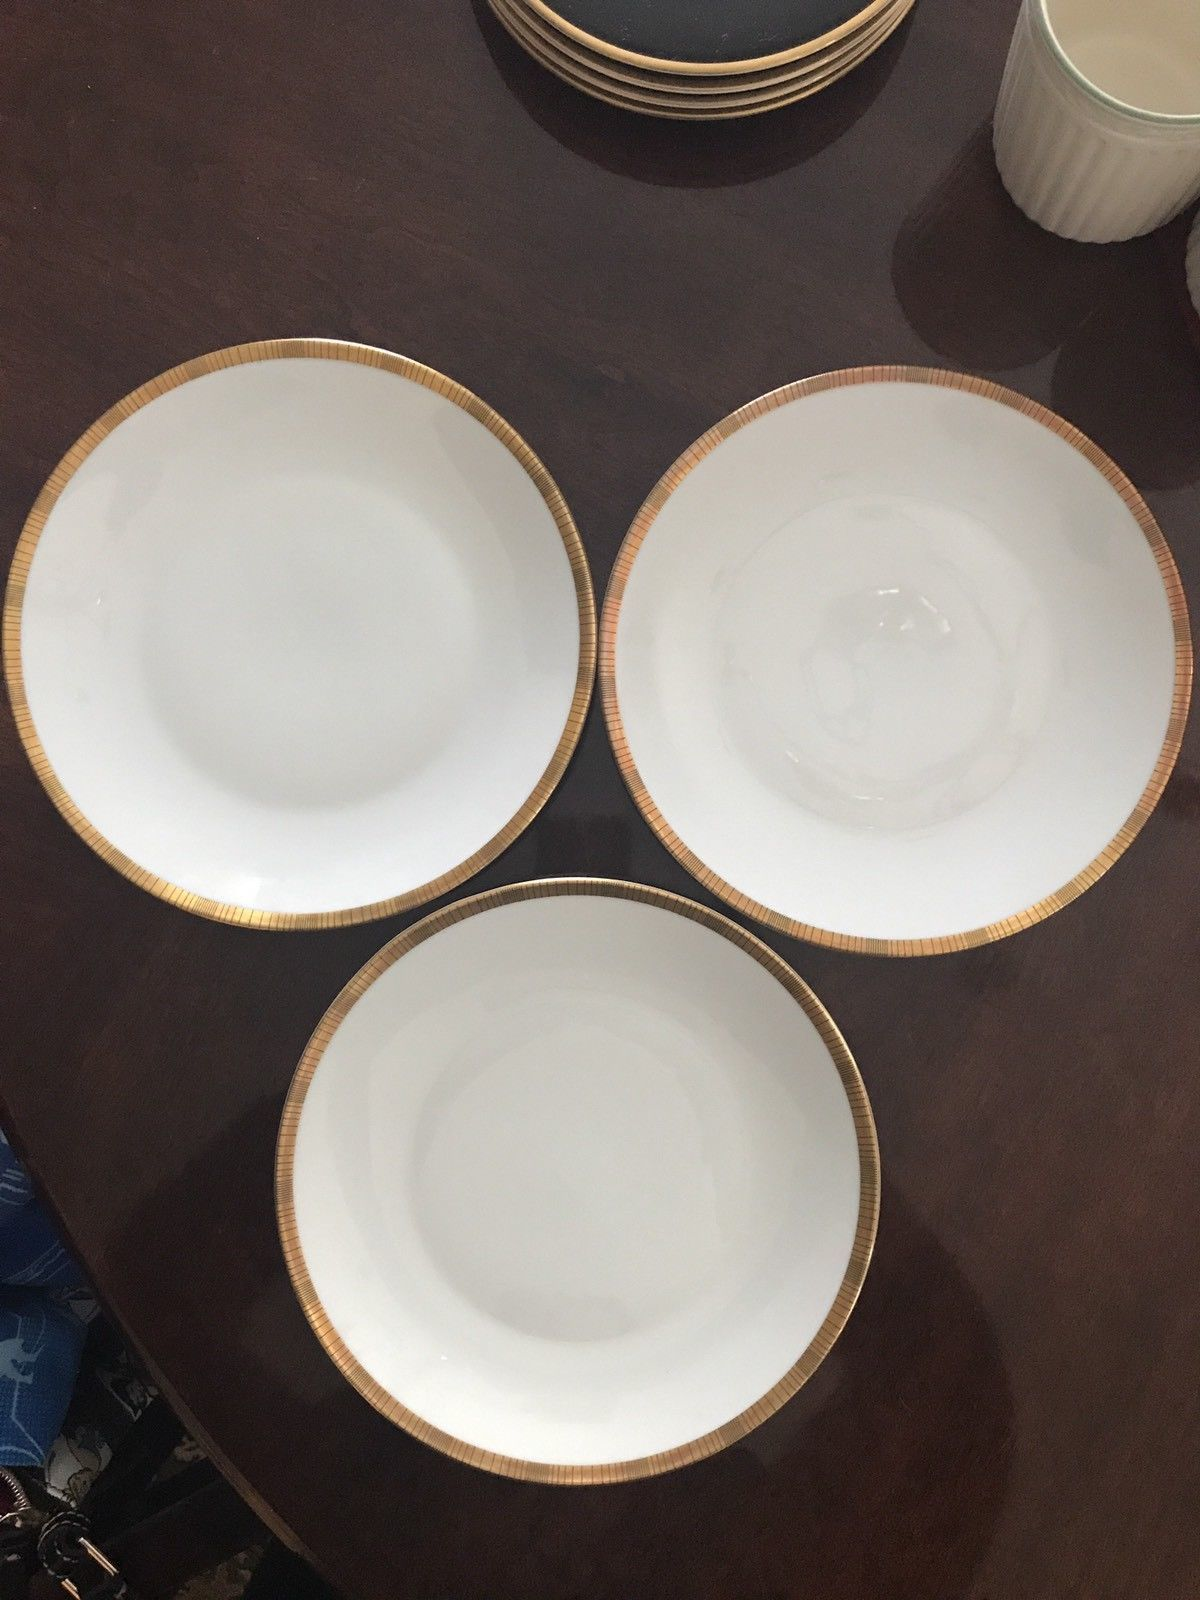 3 Vintage Rosenthal China Salad / Dessert and 50 similar items